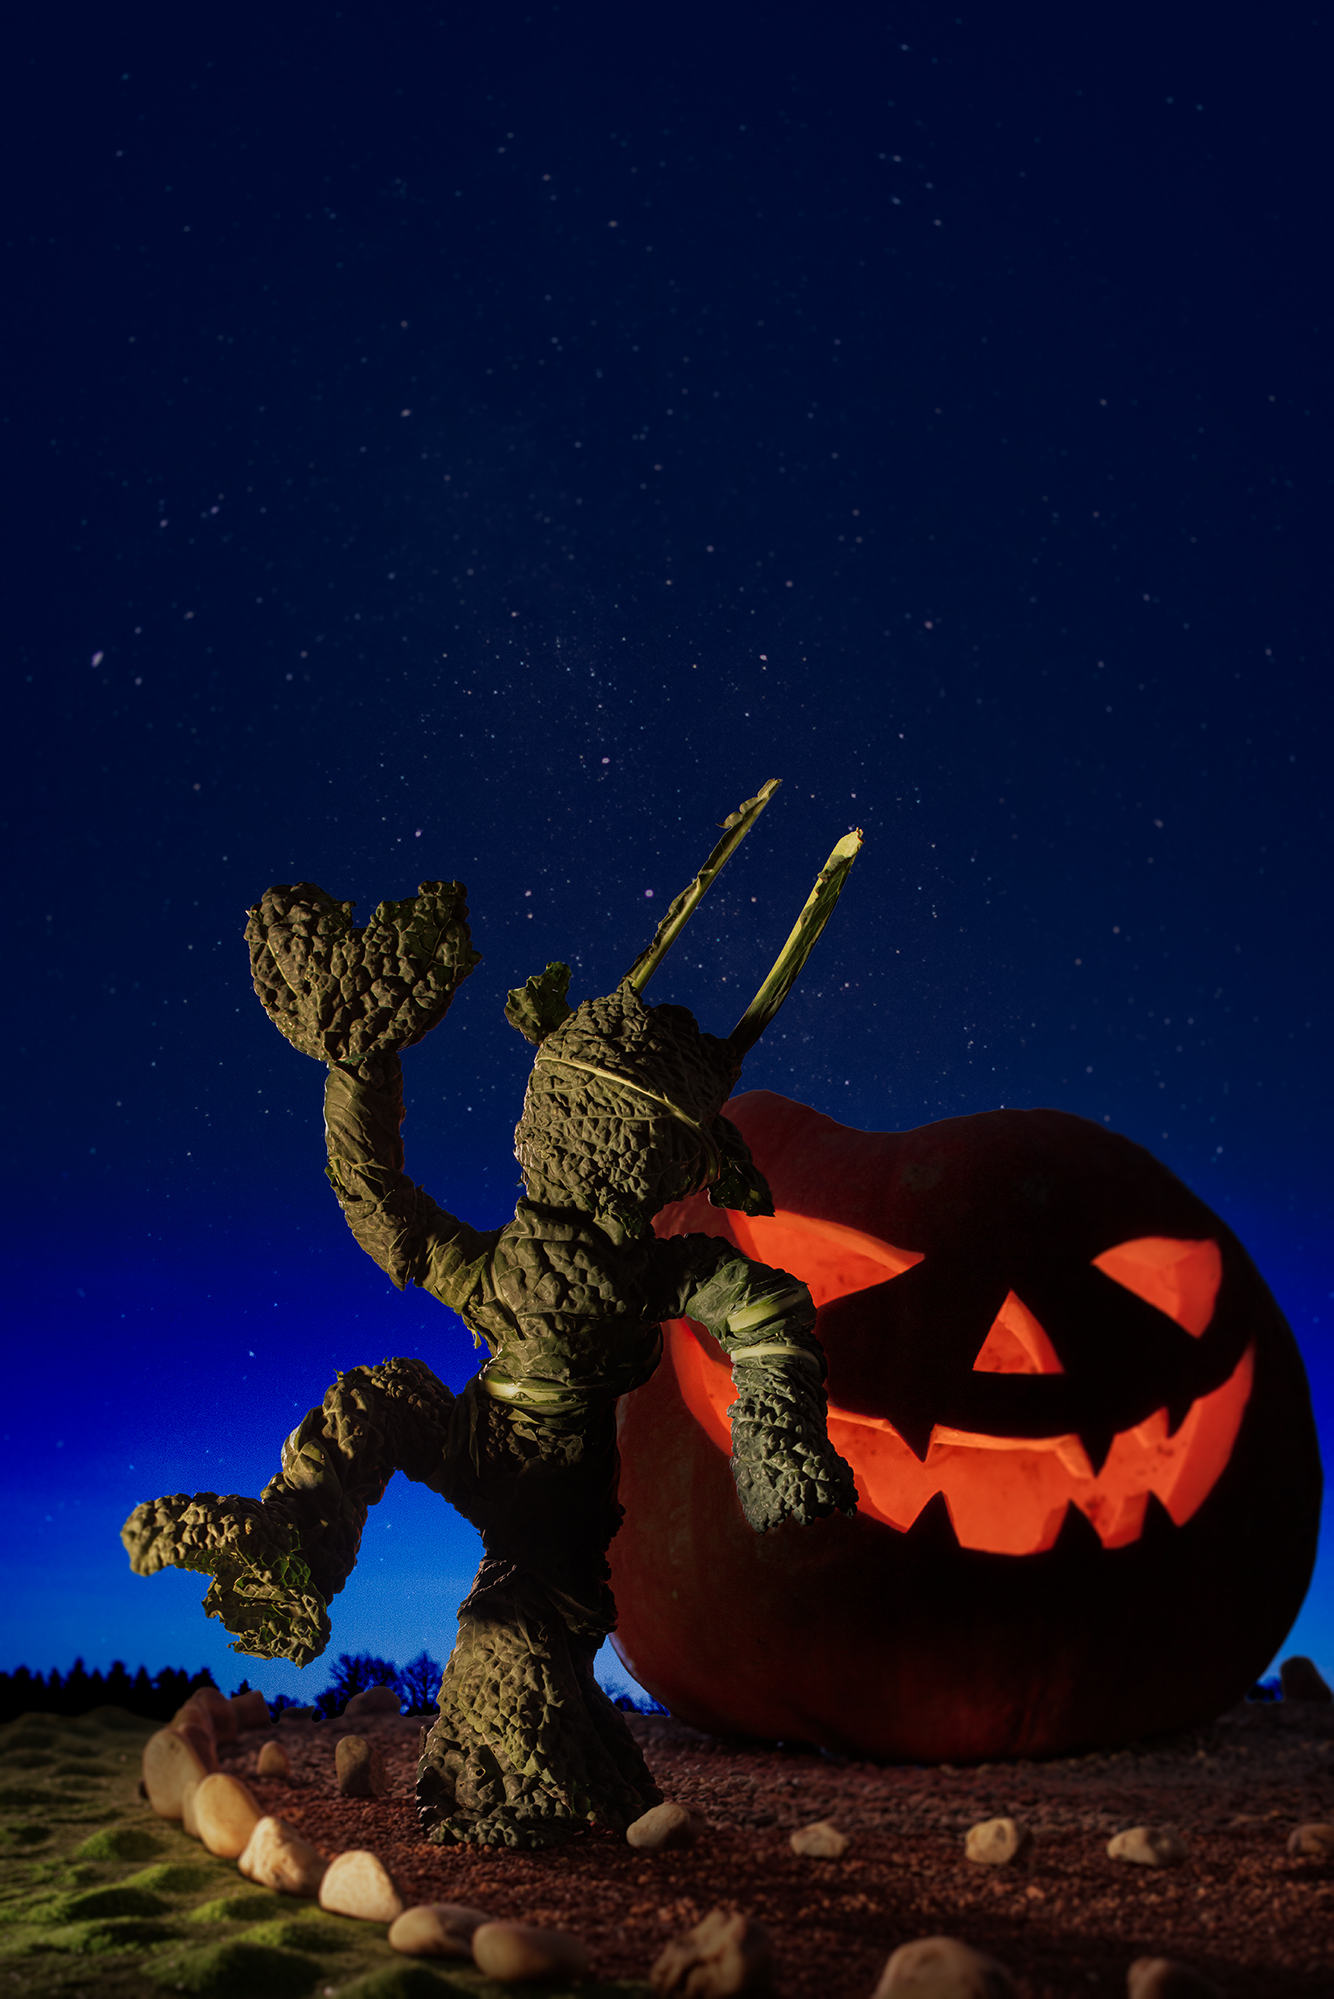 A figure made out of kale is shown in front of a lit pumpkin with carved out face.